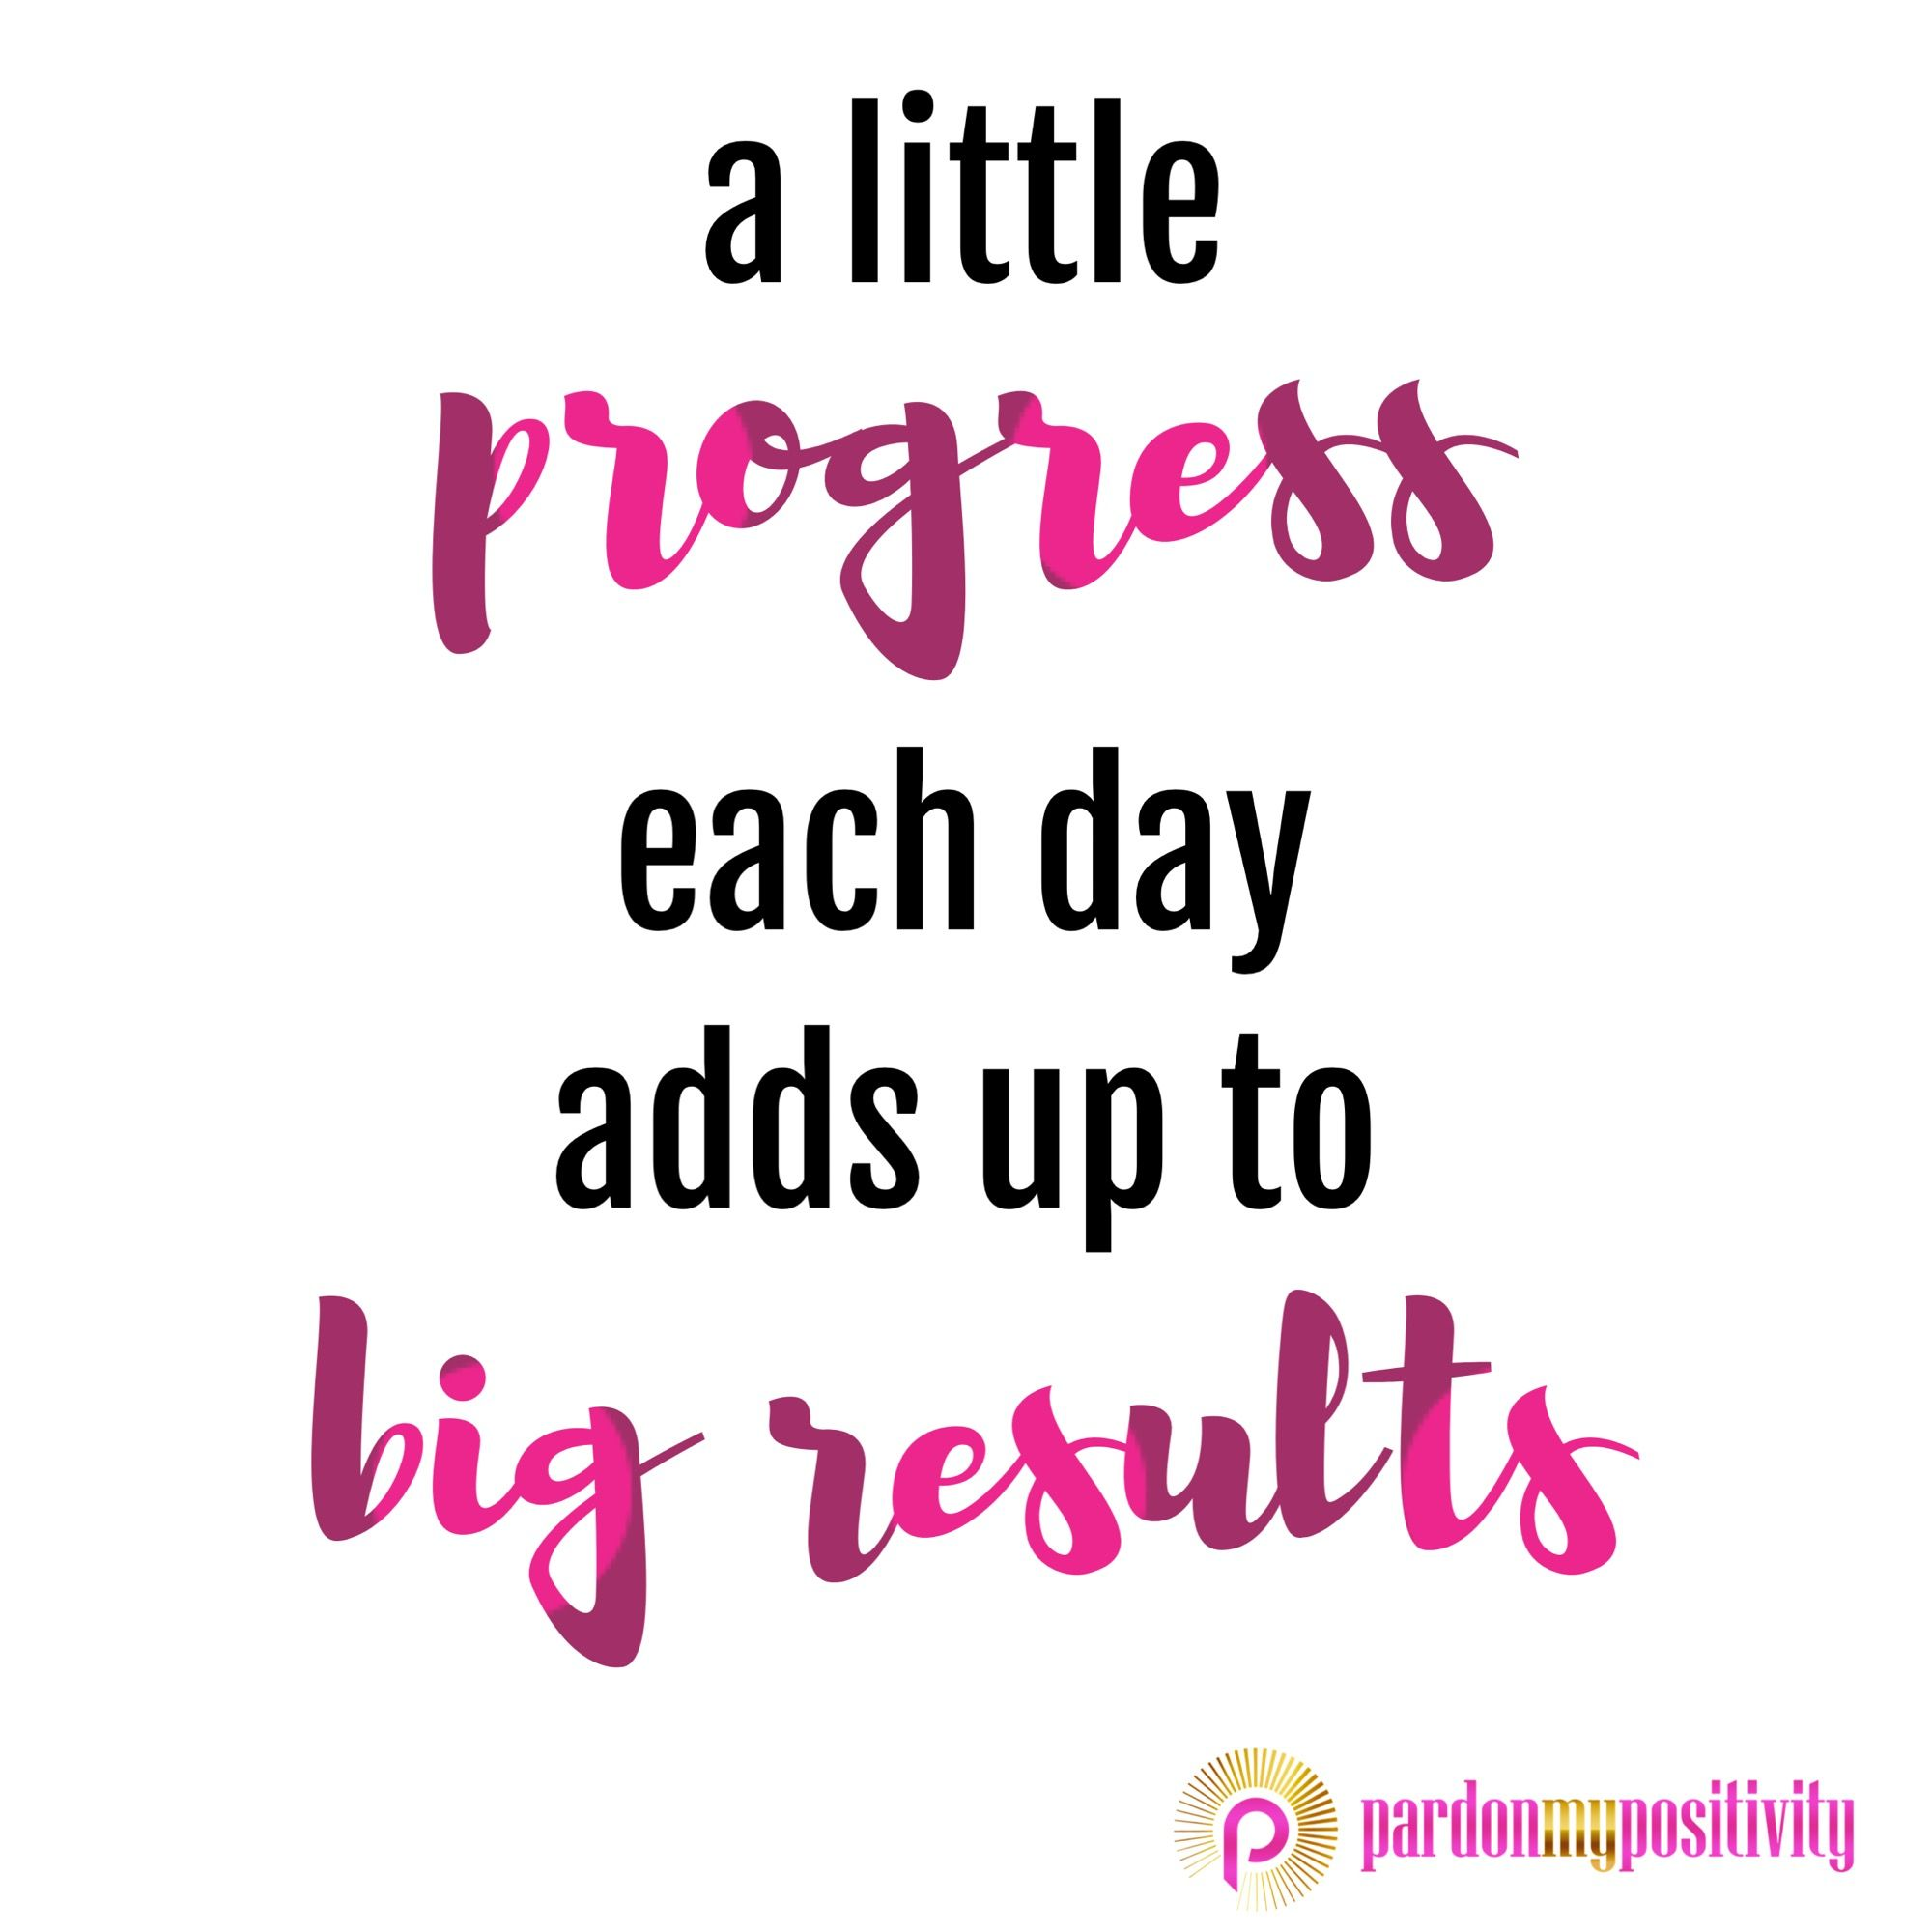 Inspirational Day Quotes: A Little Progress Each Day Adds Up To Big Results! #quote